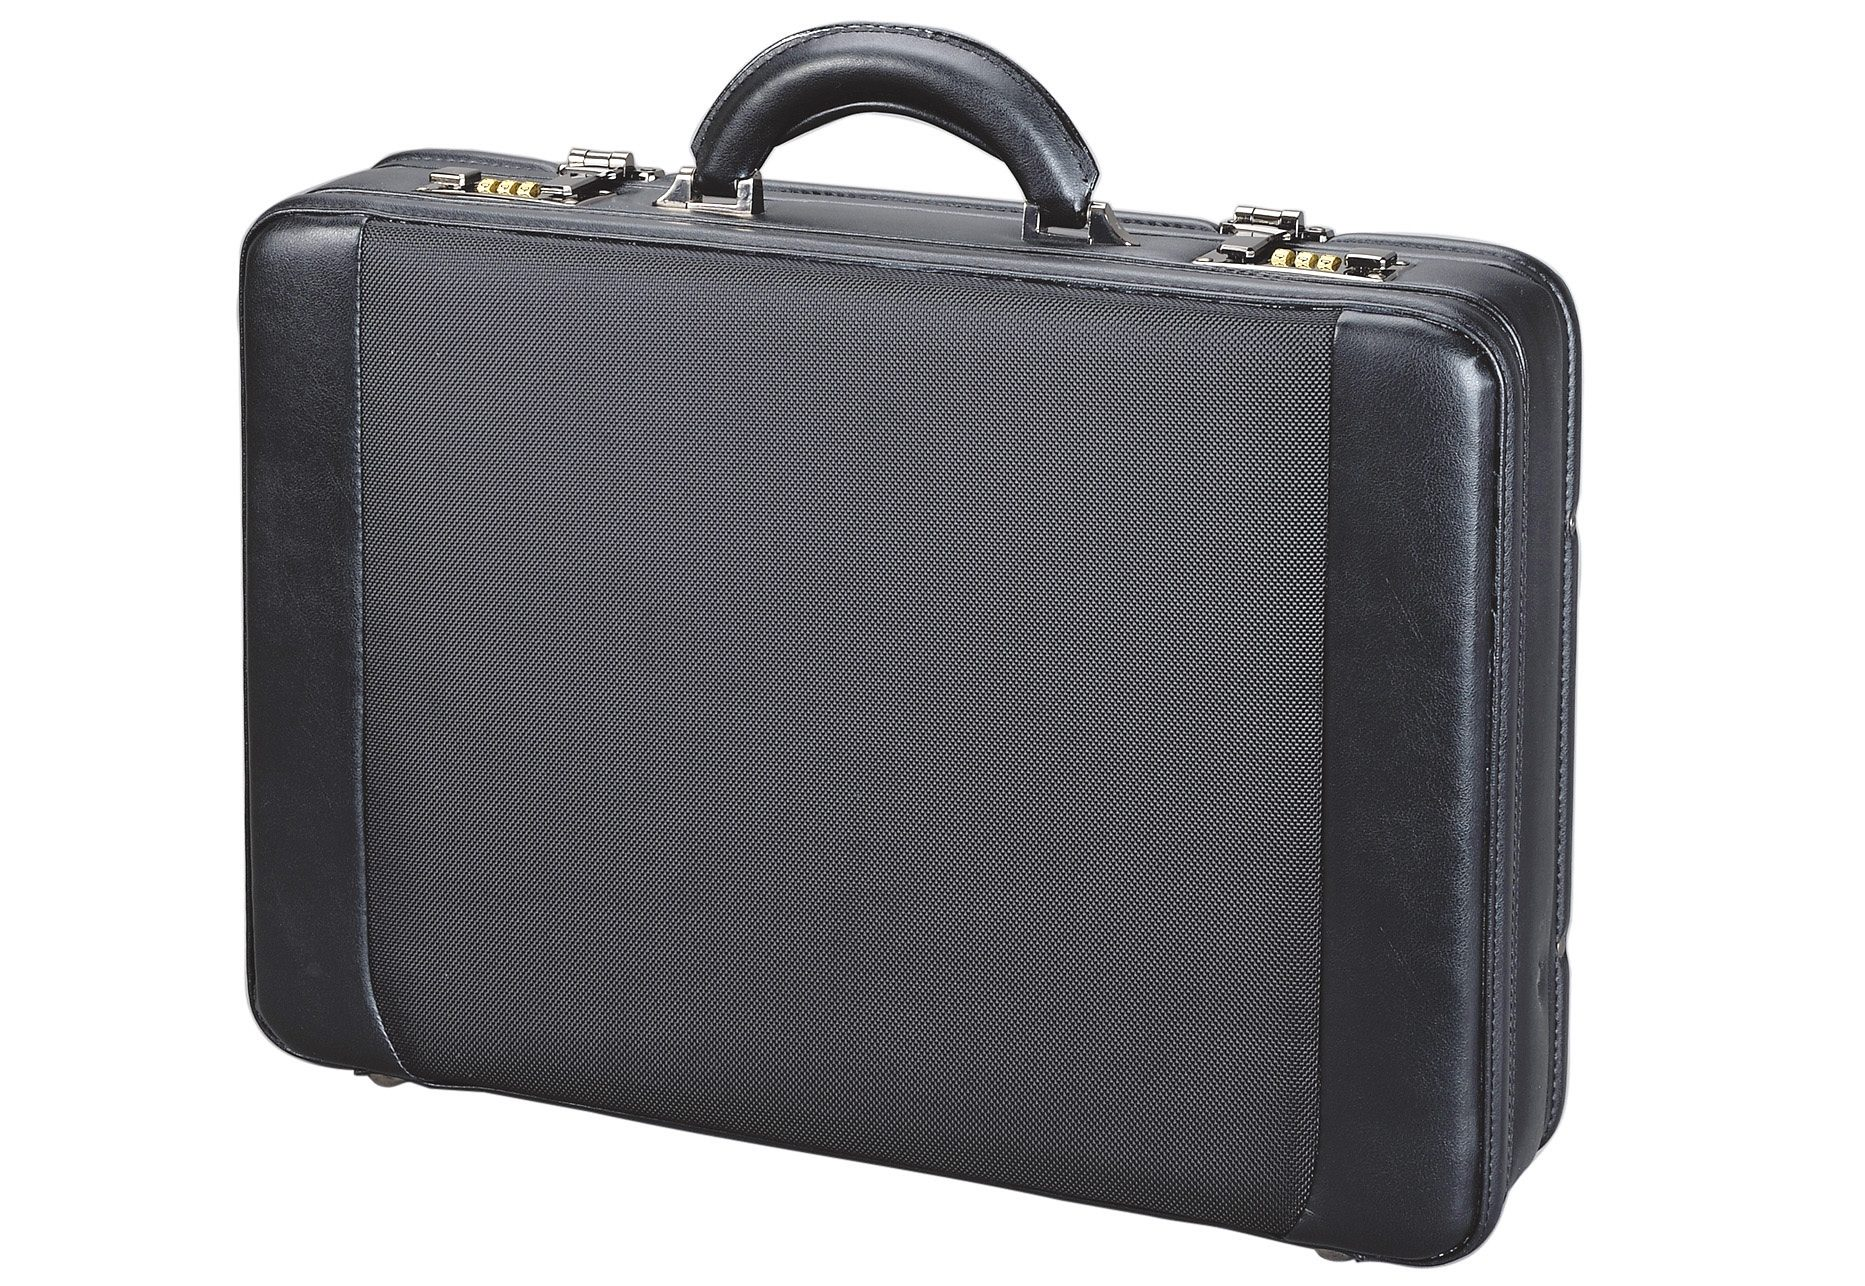 Alassio® Businesskoffer mit herausnehmbarer Laptoptasche, »Modica, Attachékoffer«